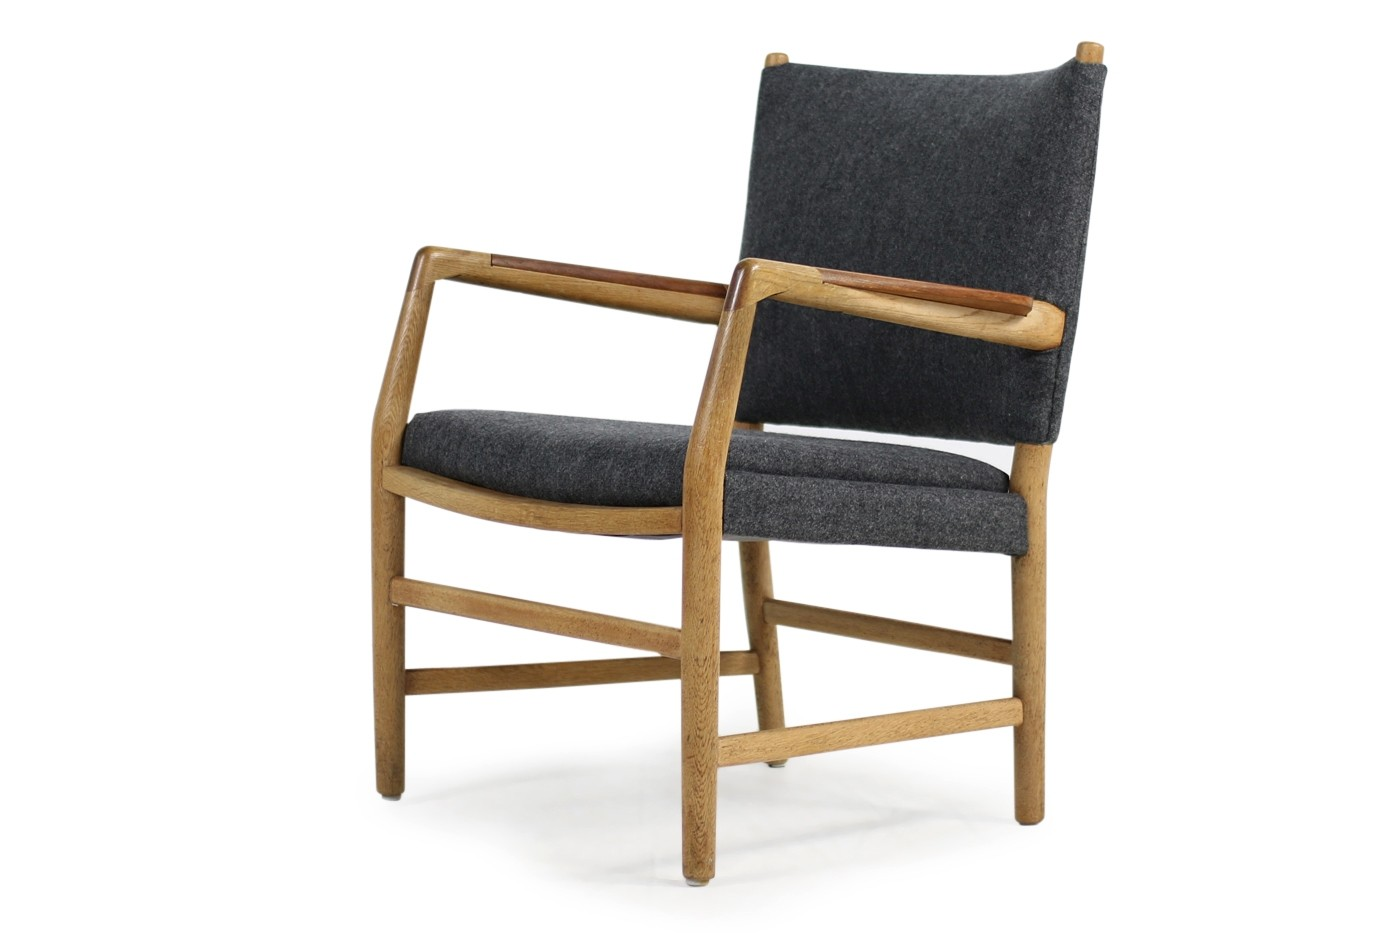 1950s hans j wegner 39 town hall 39 chair oak teak danish modern. Black Bedroom Furniture Sets. Home Design Ideas